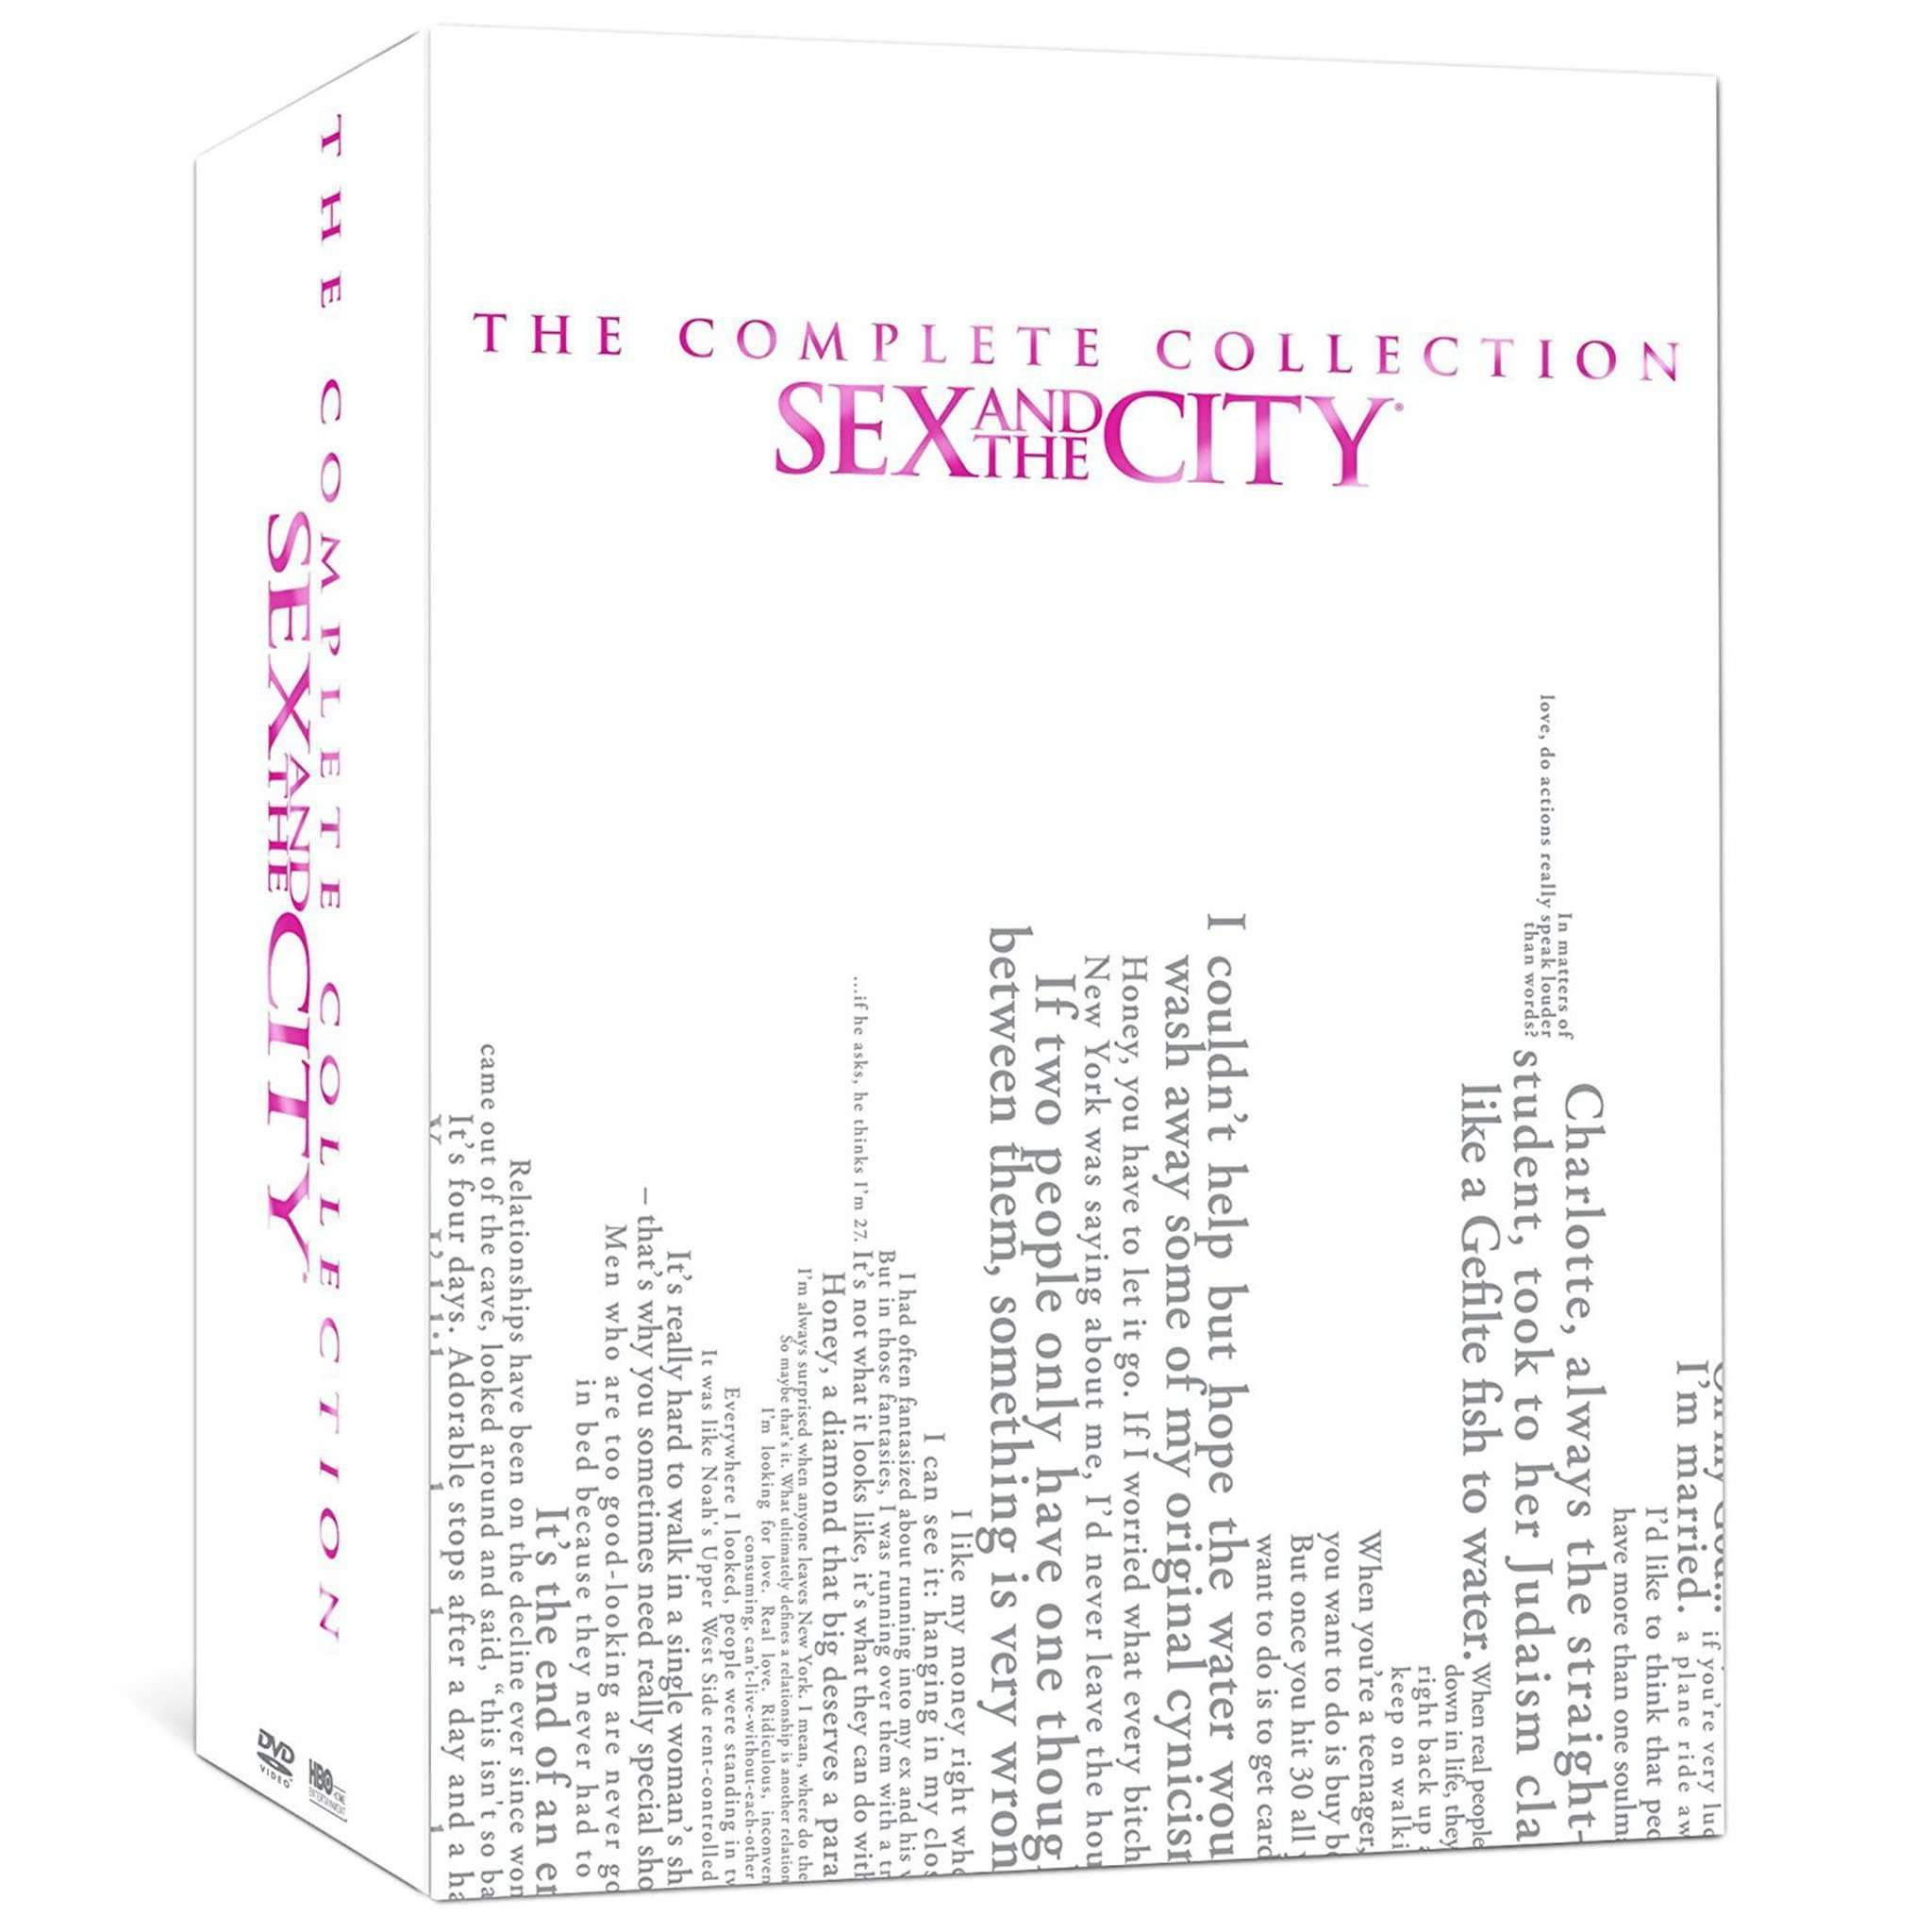 Sex and the City DVD Complete Series Box Set HBO DVDs & Blu-ray Discs > DVDs > Box Sets